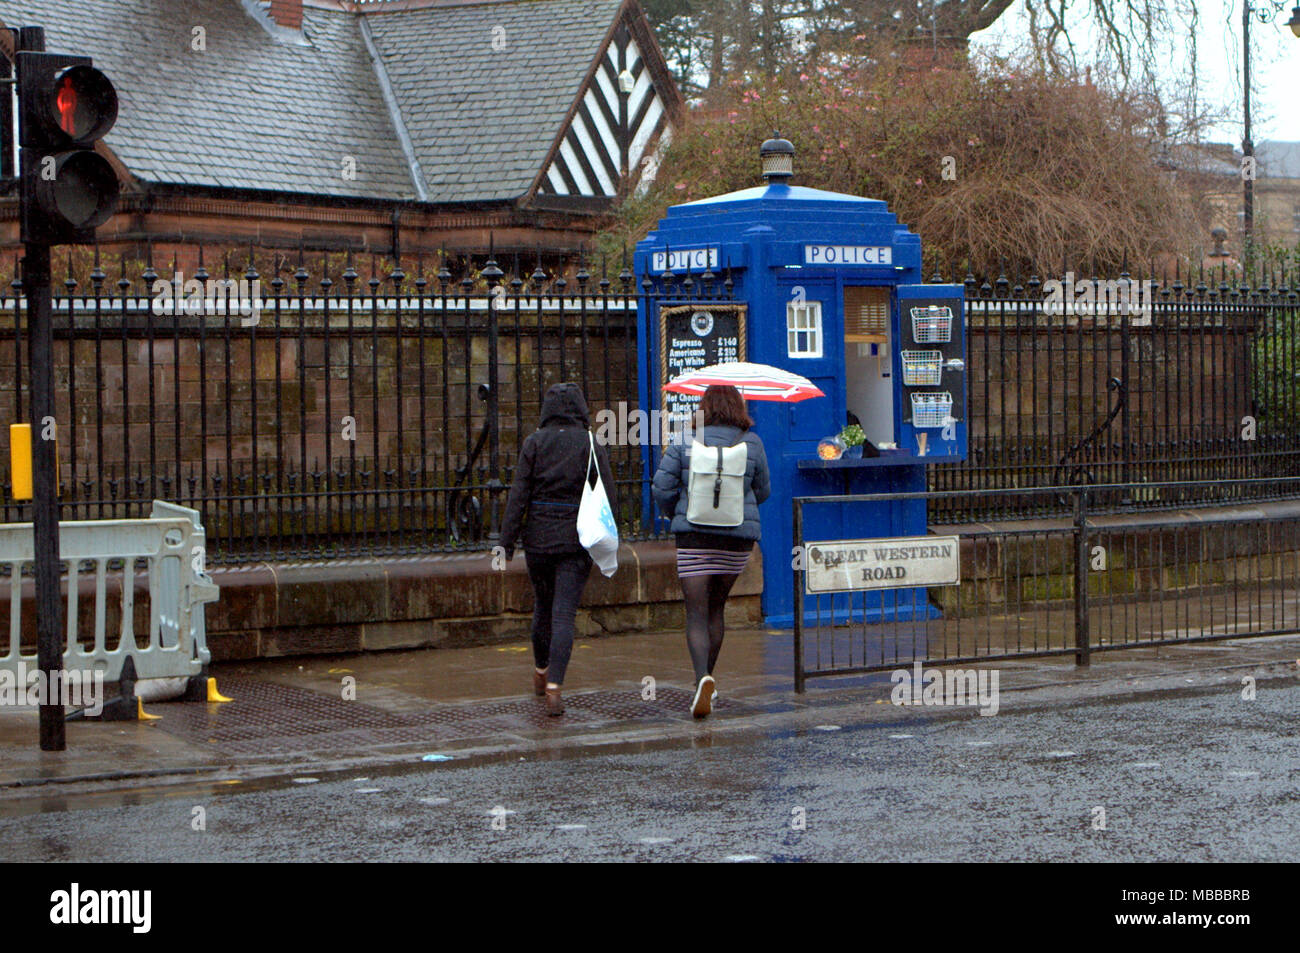 which also visits glasgow stock photos  u0026 which also visits